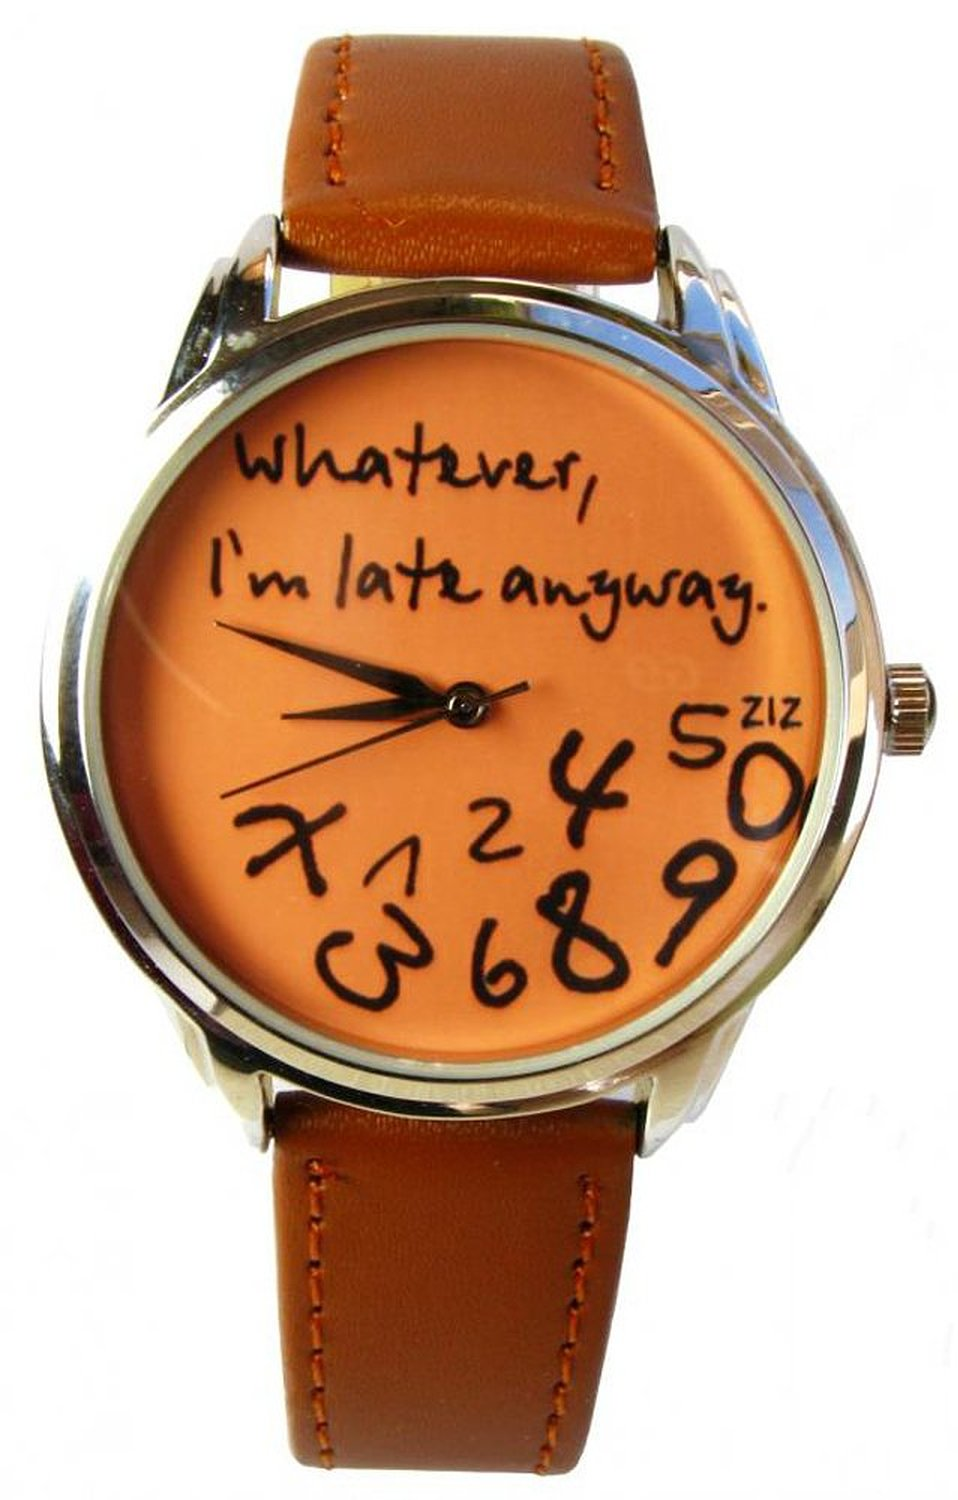 Amazon.com: ziz orange whatever, i'm late anyway watch unisex wrist watch, quartz analog watch with leather band: ziz: watches